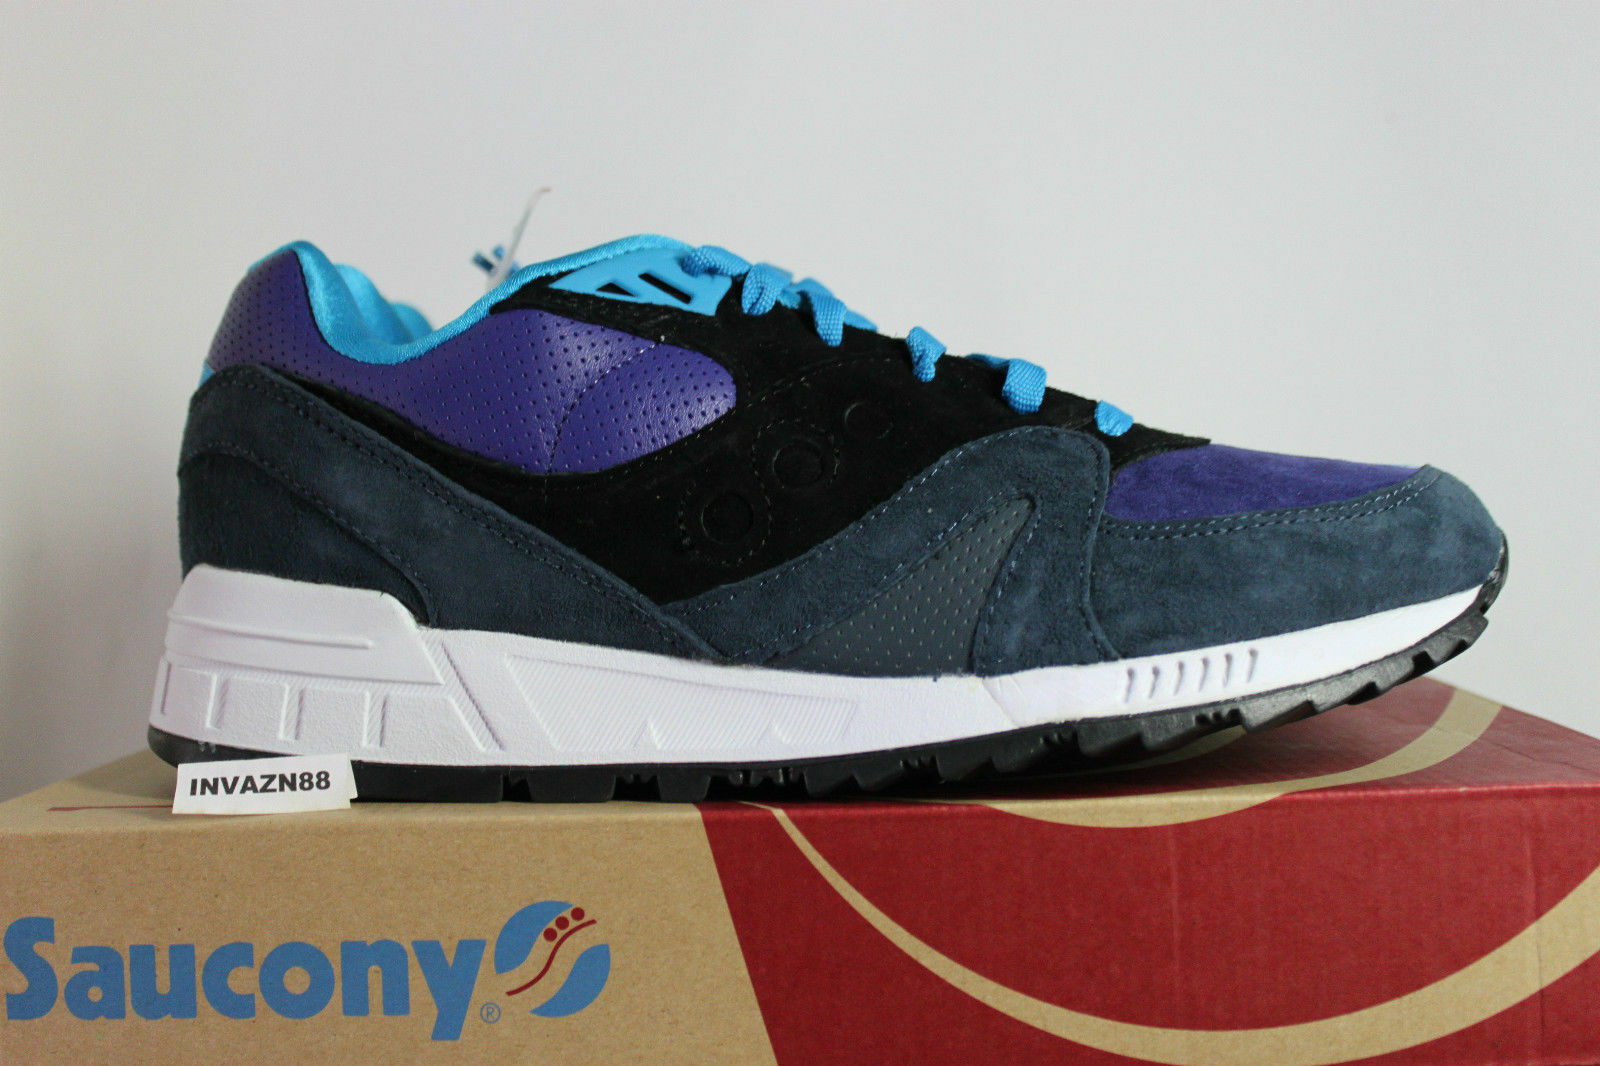 SAUCONY X HANON SHADOW MASTER MIDNIGHT RUNNER BLACK PURPLE SIZE 10